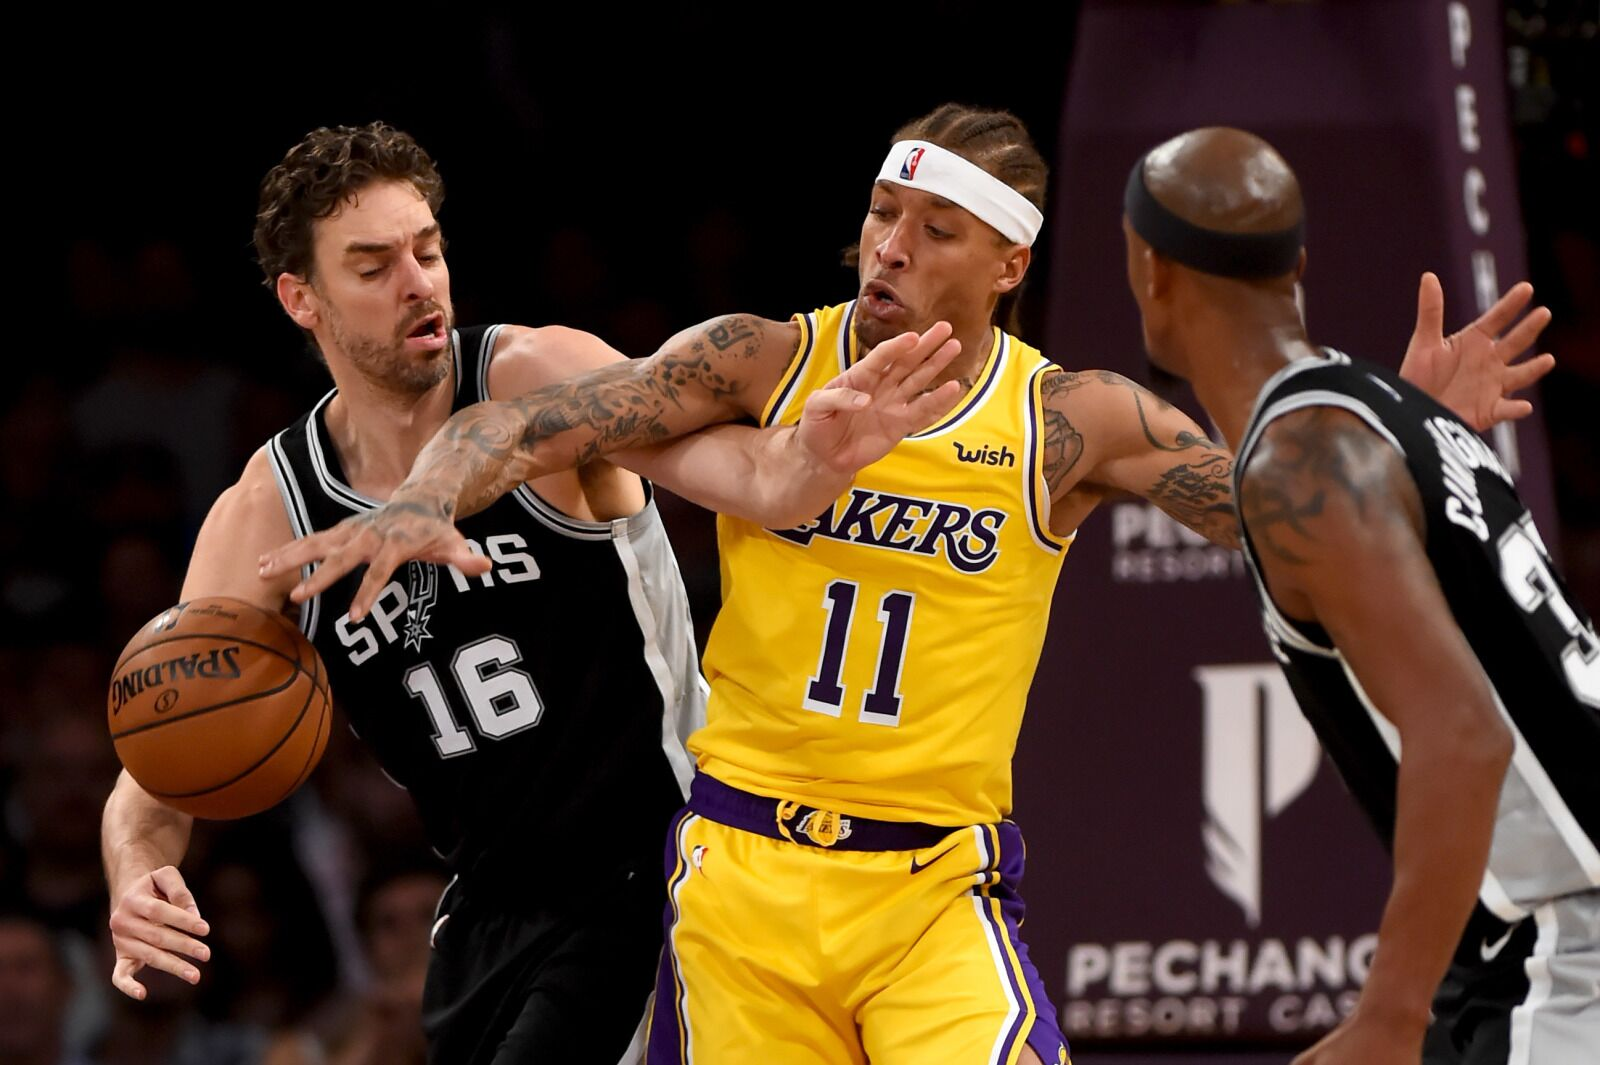 Okc Thunder Target Michael Beasley Photo By Hans Gutknecht Digital First Media Los Angeles Daily News Via Getty Images